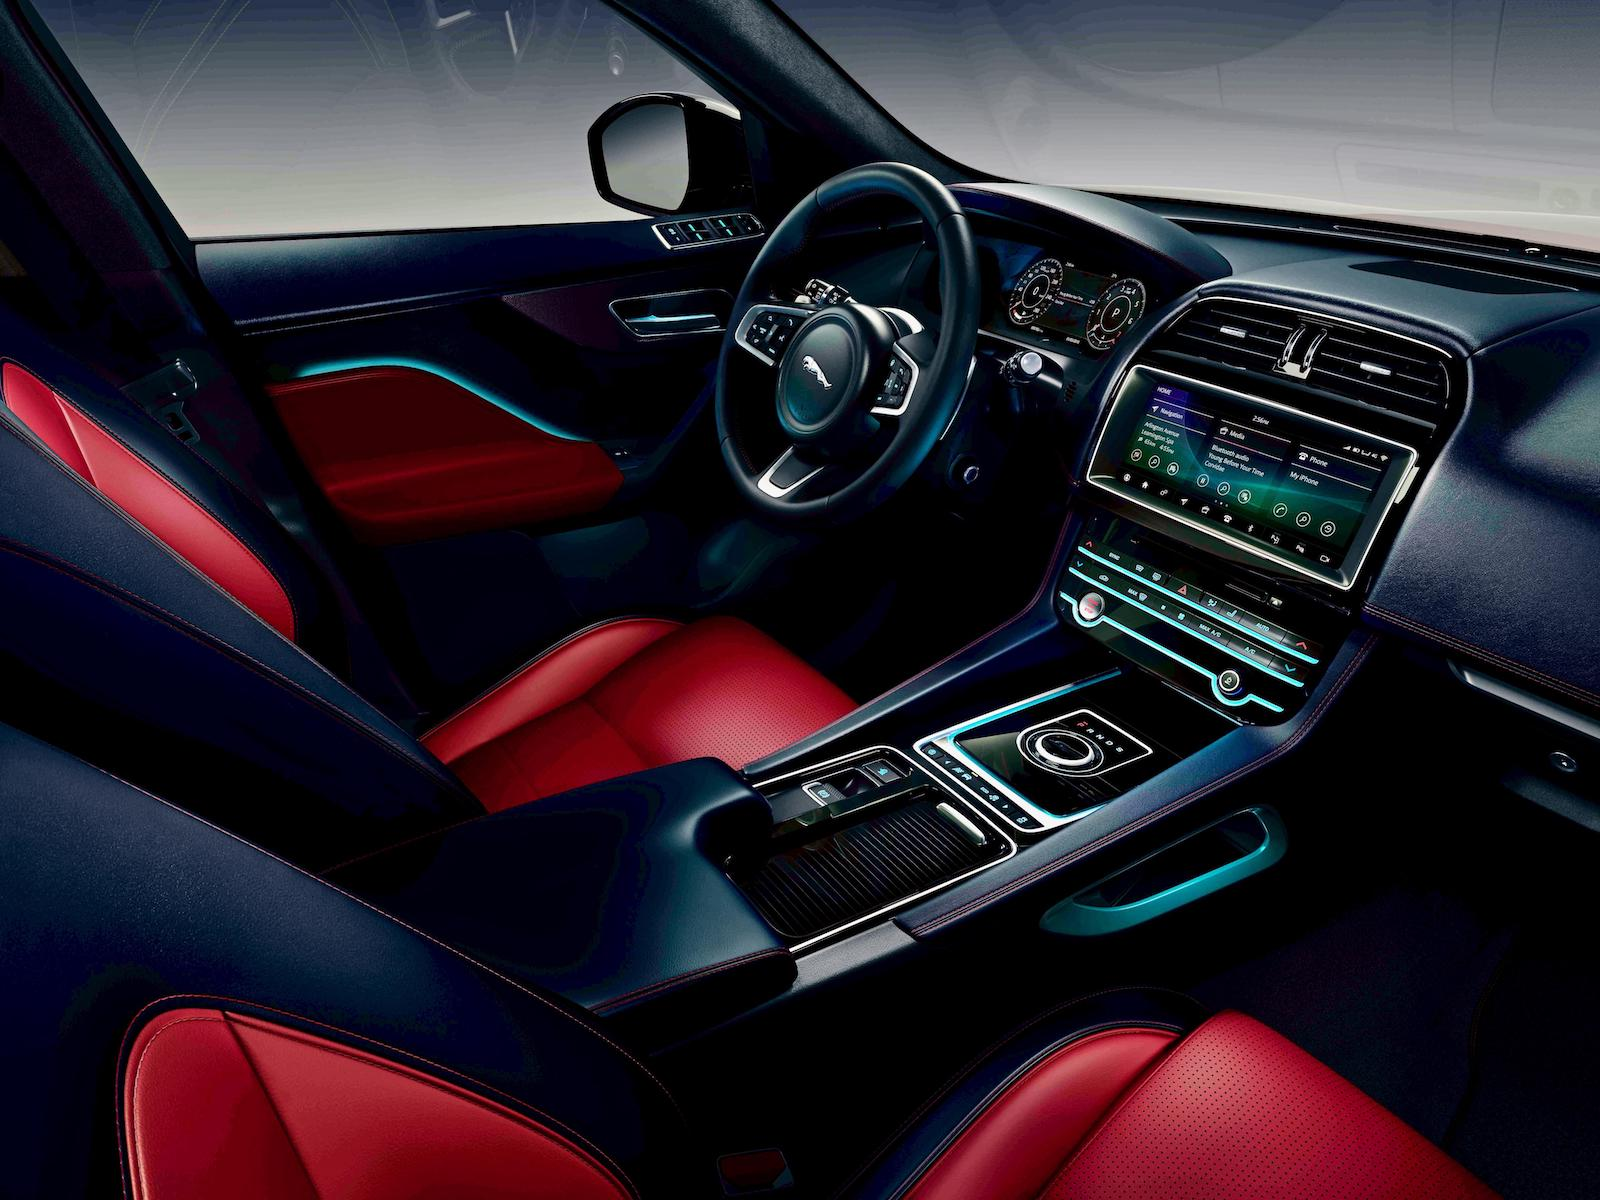 2020 Jaguar F-PACE 300 Sport, Chequered Flag editions announced - PerformanceDrive